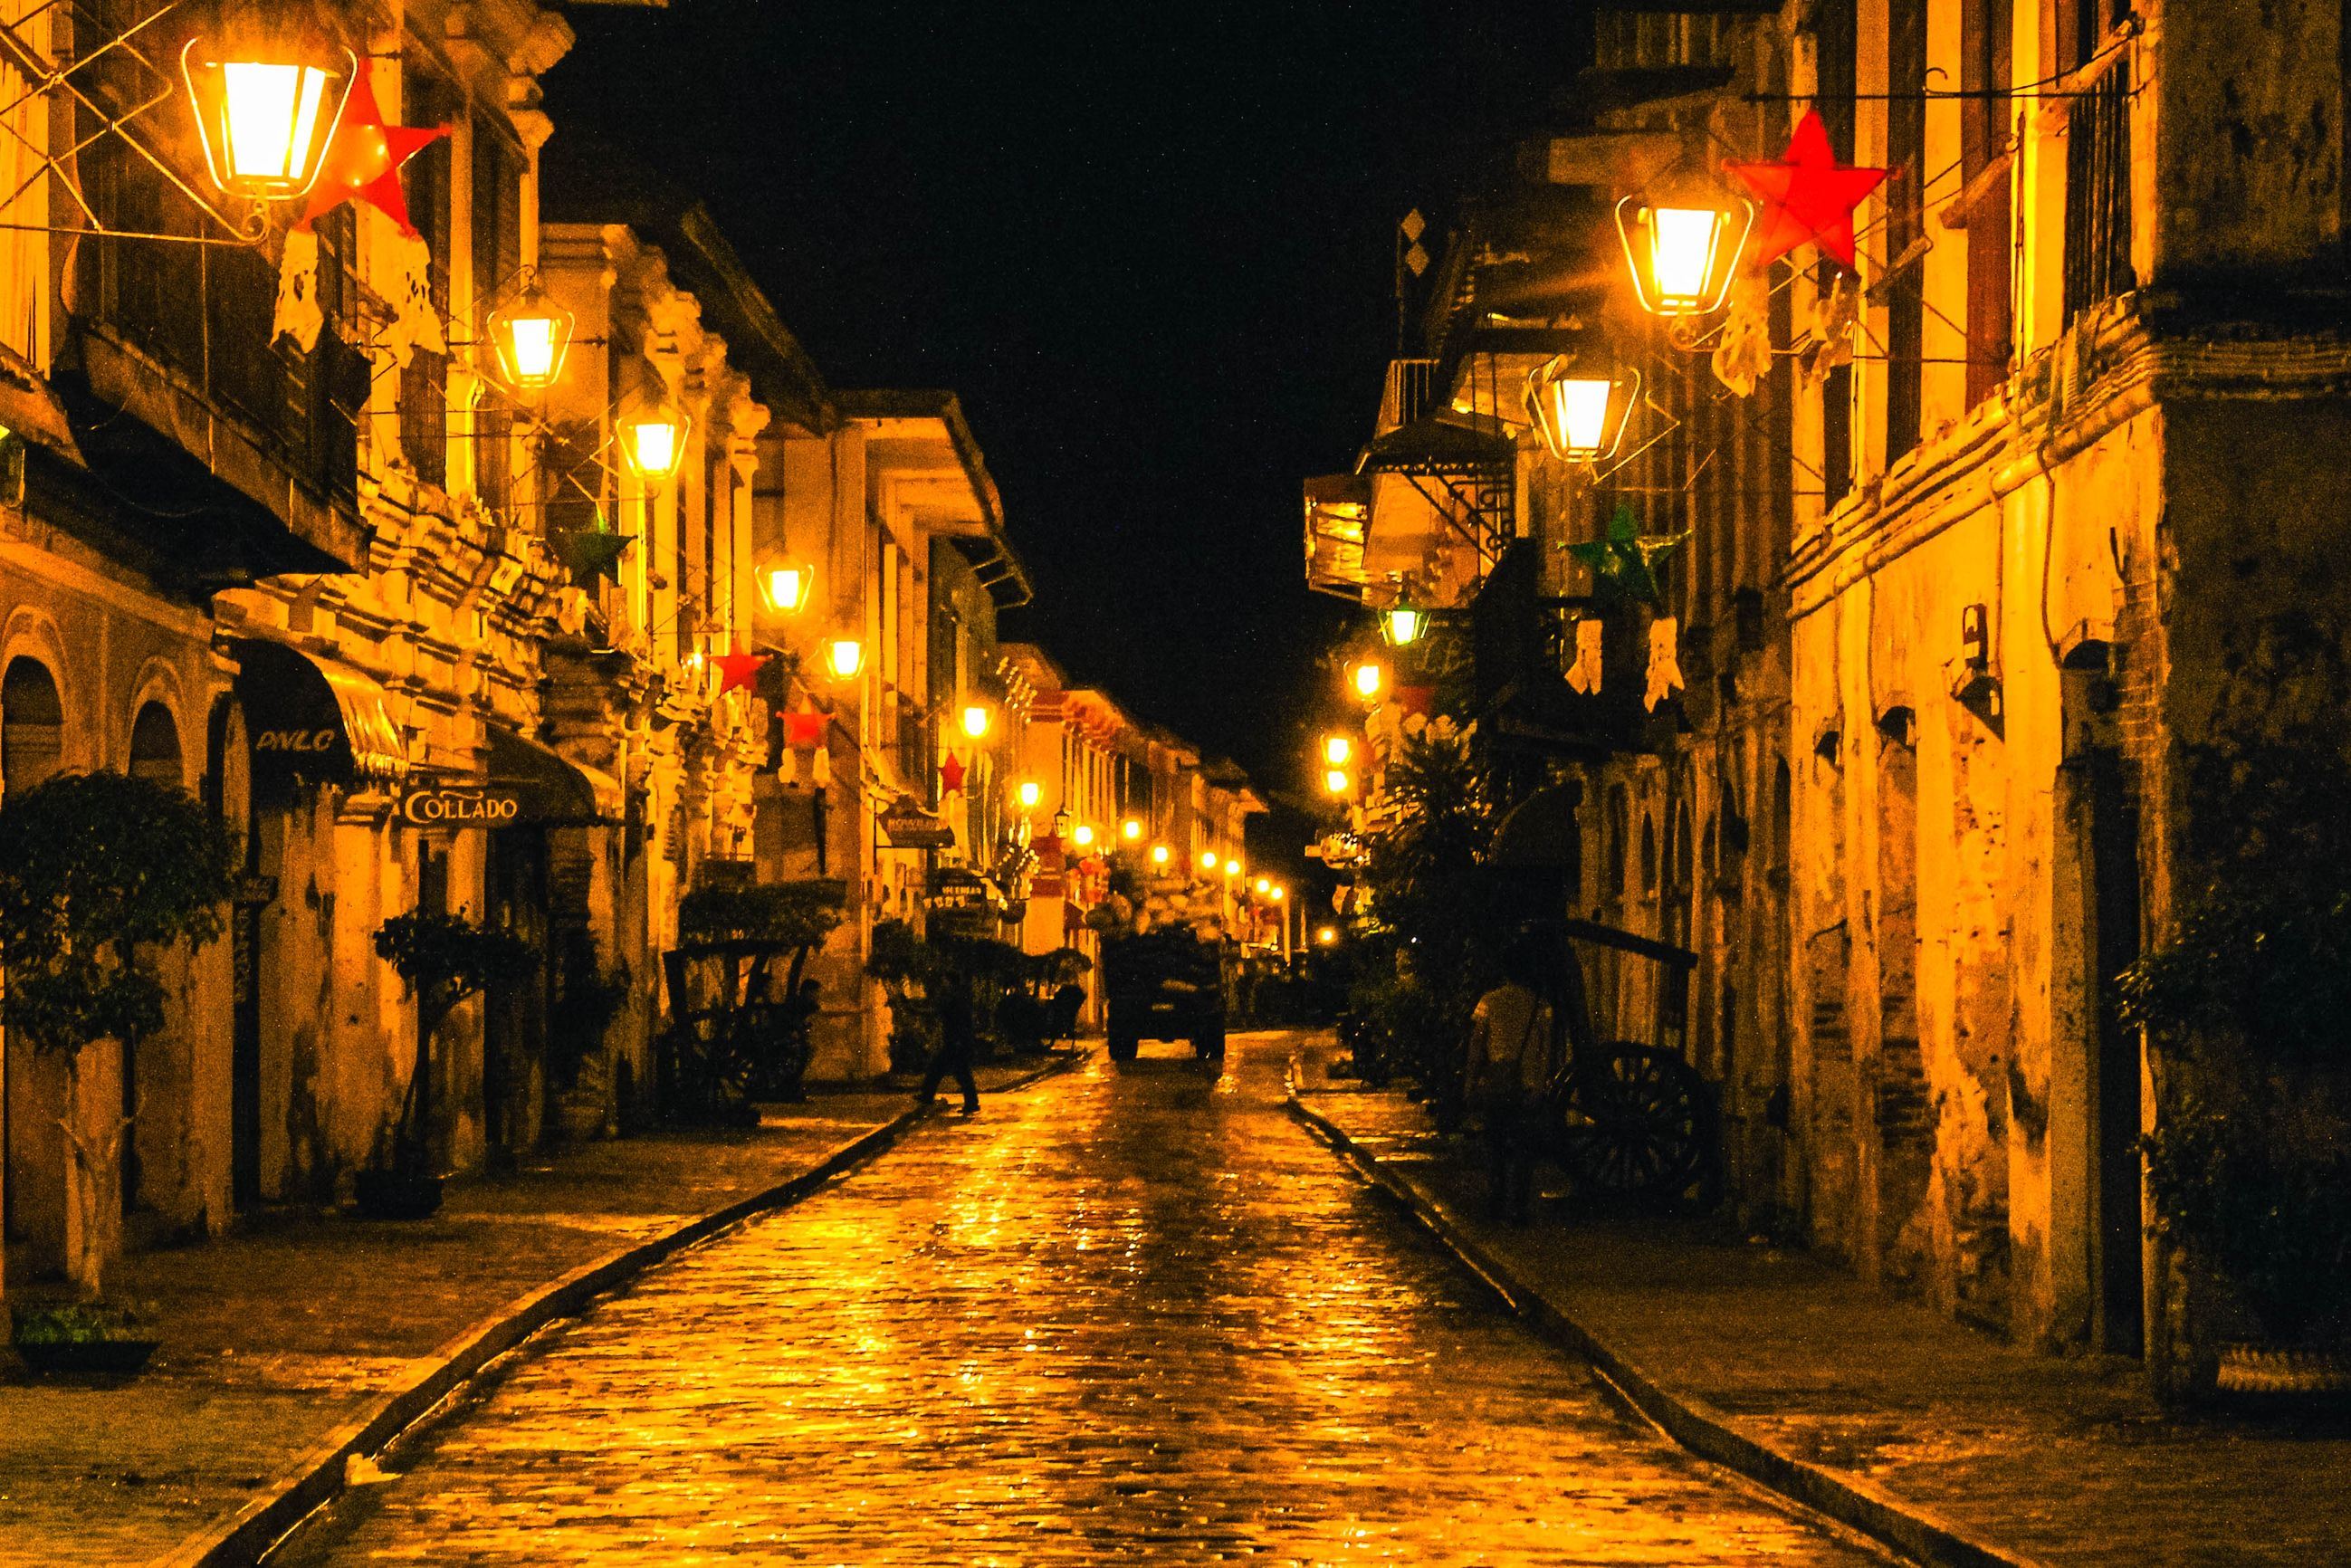 Cobblestone street lined by old Spanish colonial houses lit by yellow and orange lamps at night in Vigan City, Philippines